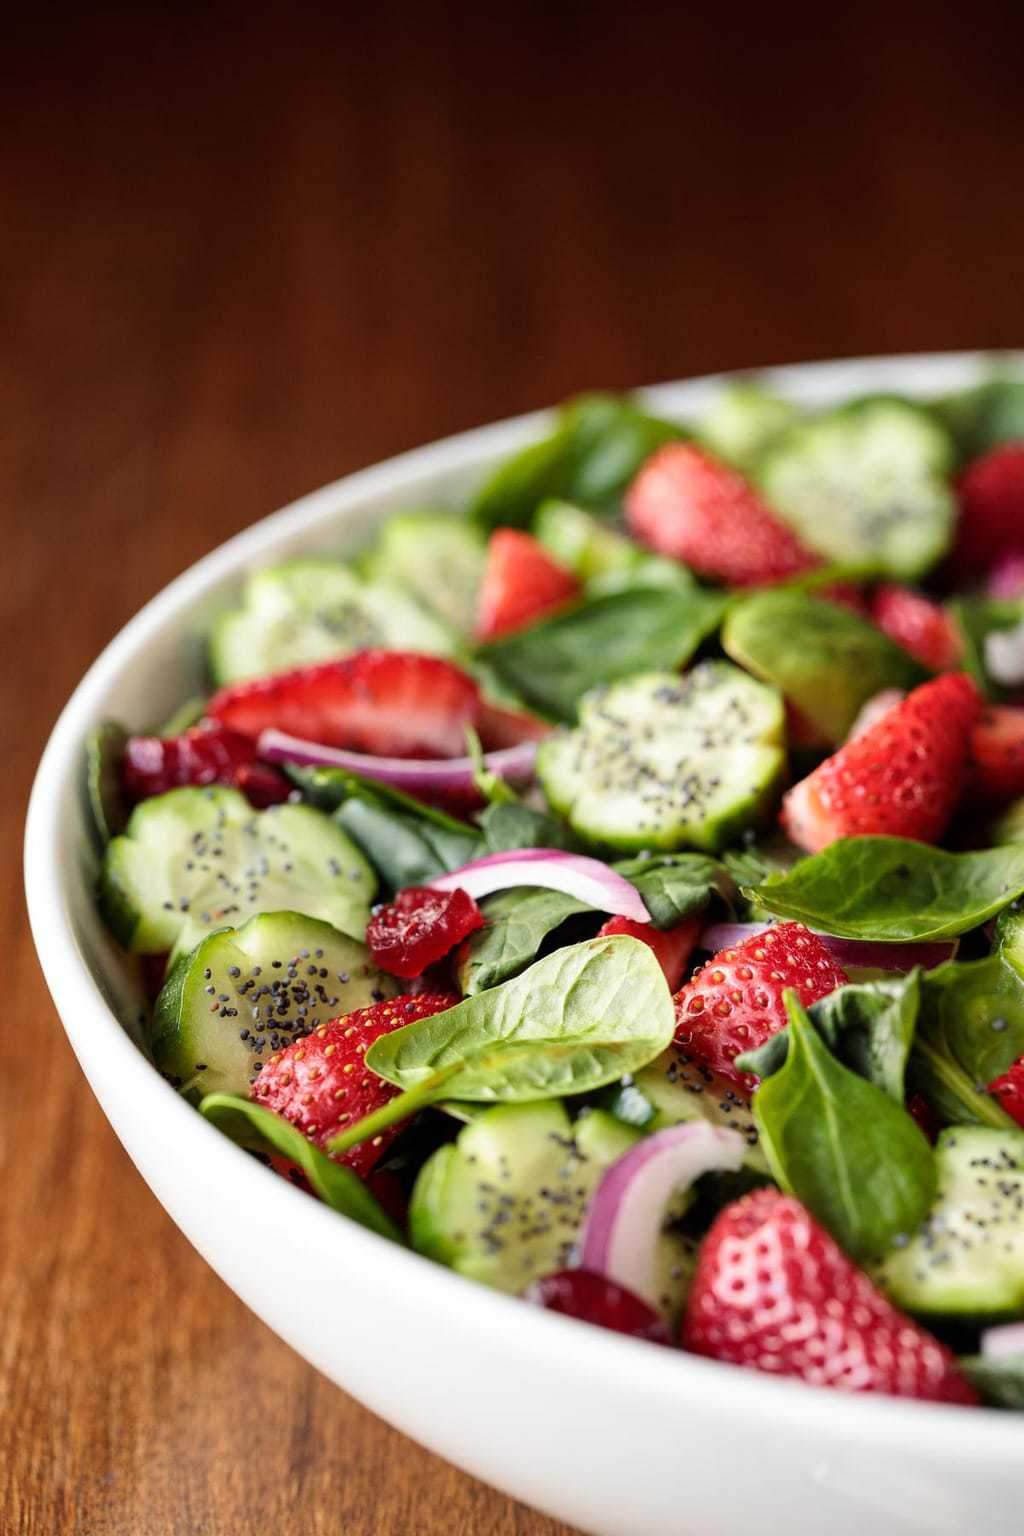 Photo of part of a white bowl of Strawberry Spinach Salad on a wood table.